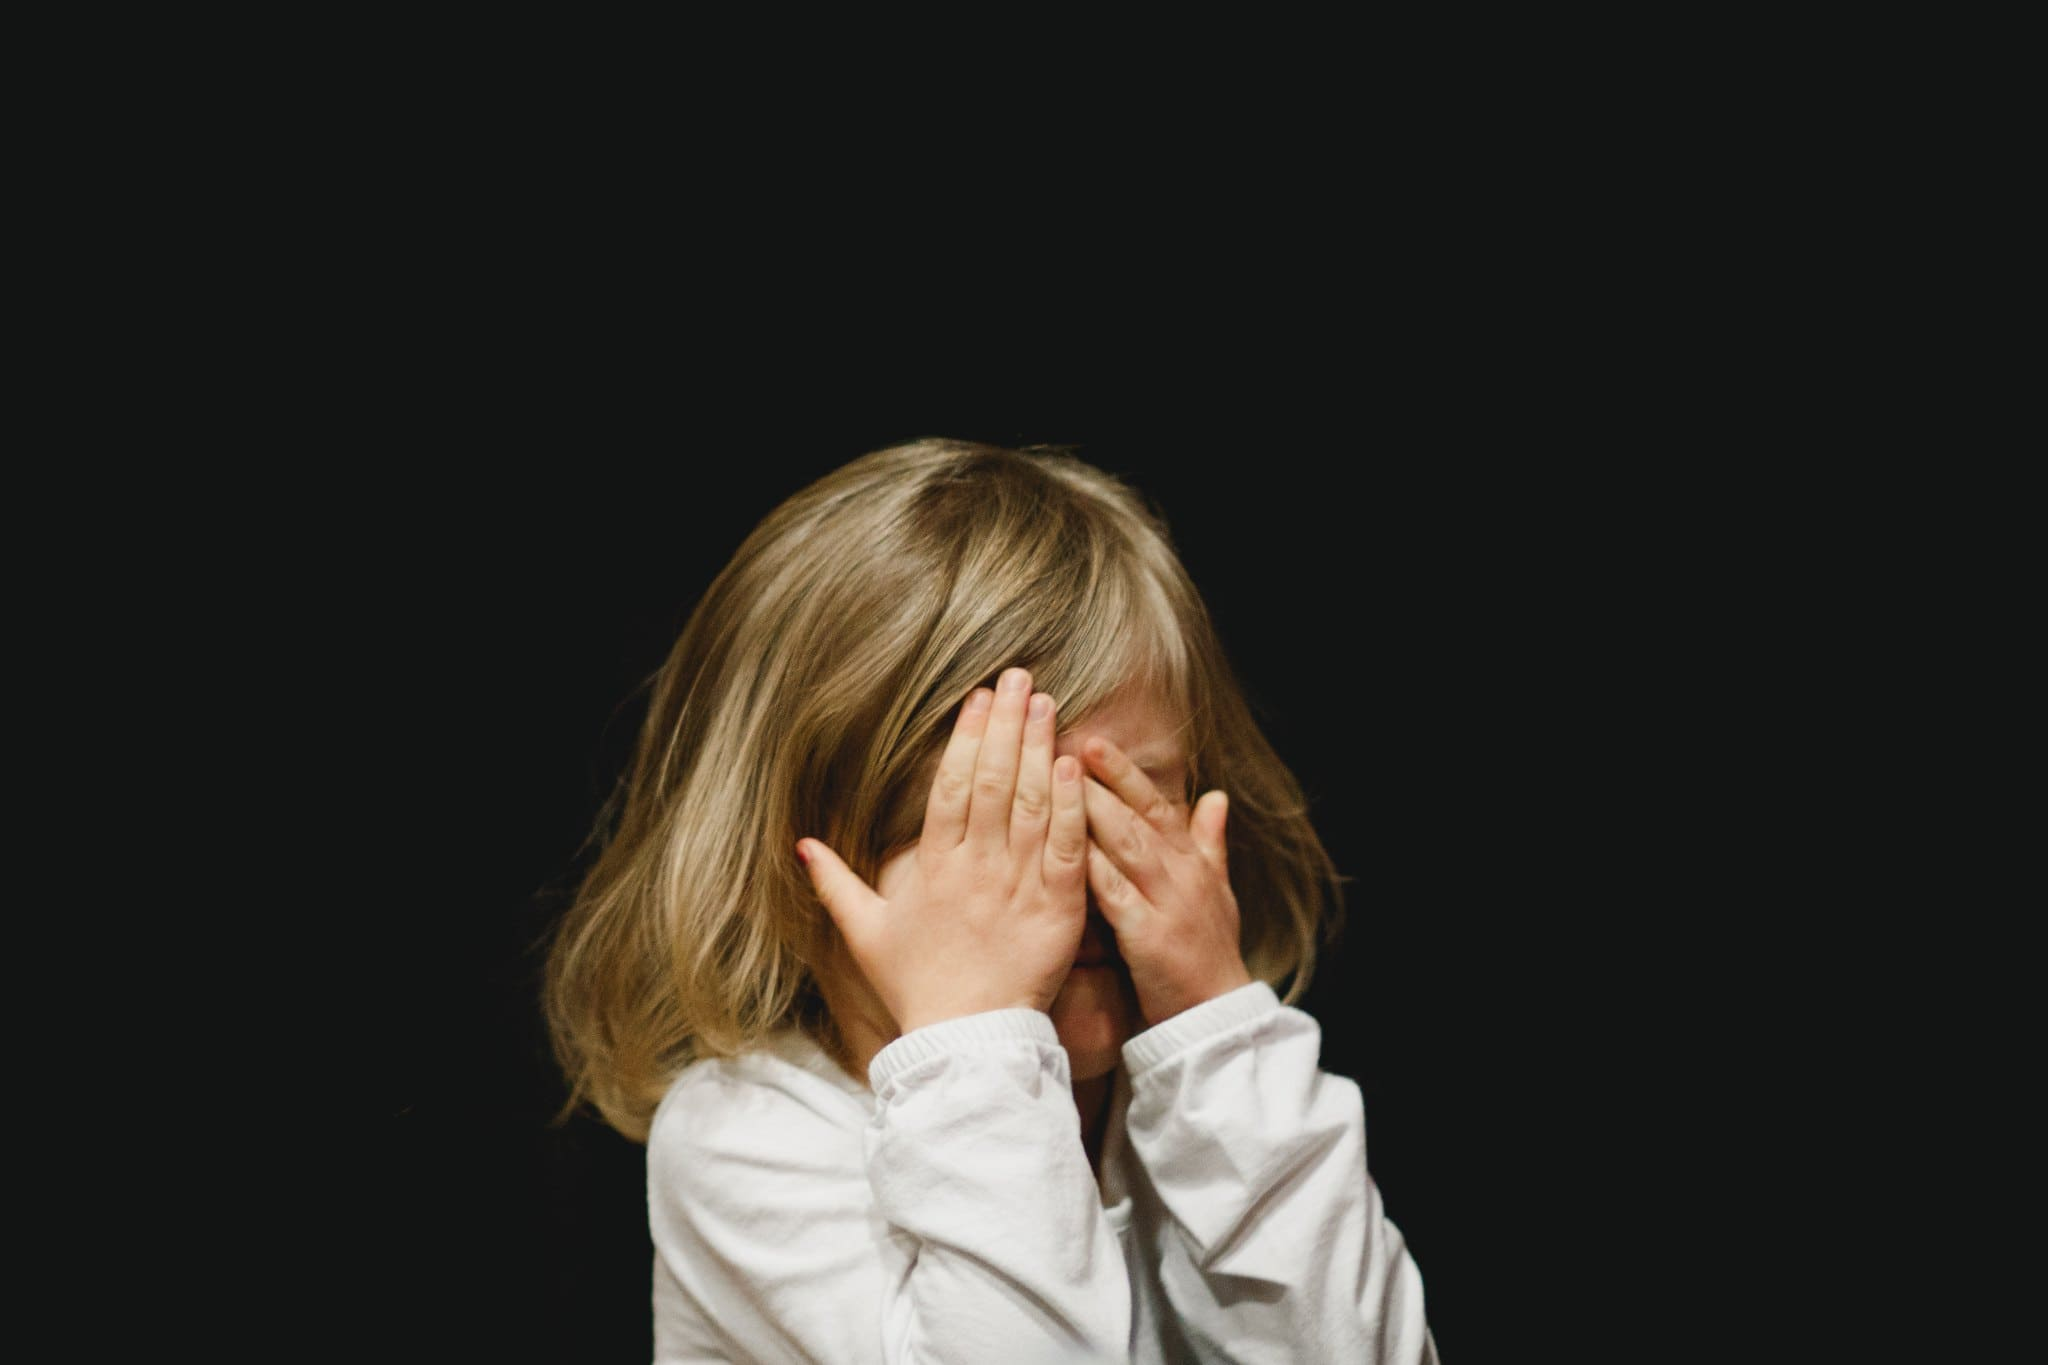 A child hiding behind her hands, nervous to speak in front of a group.